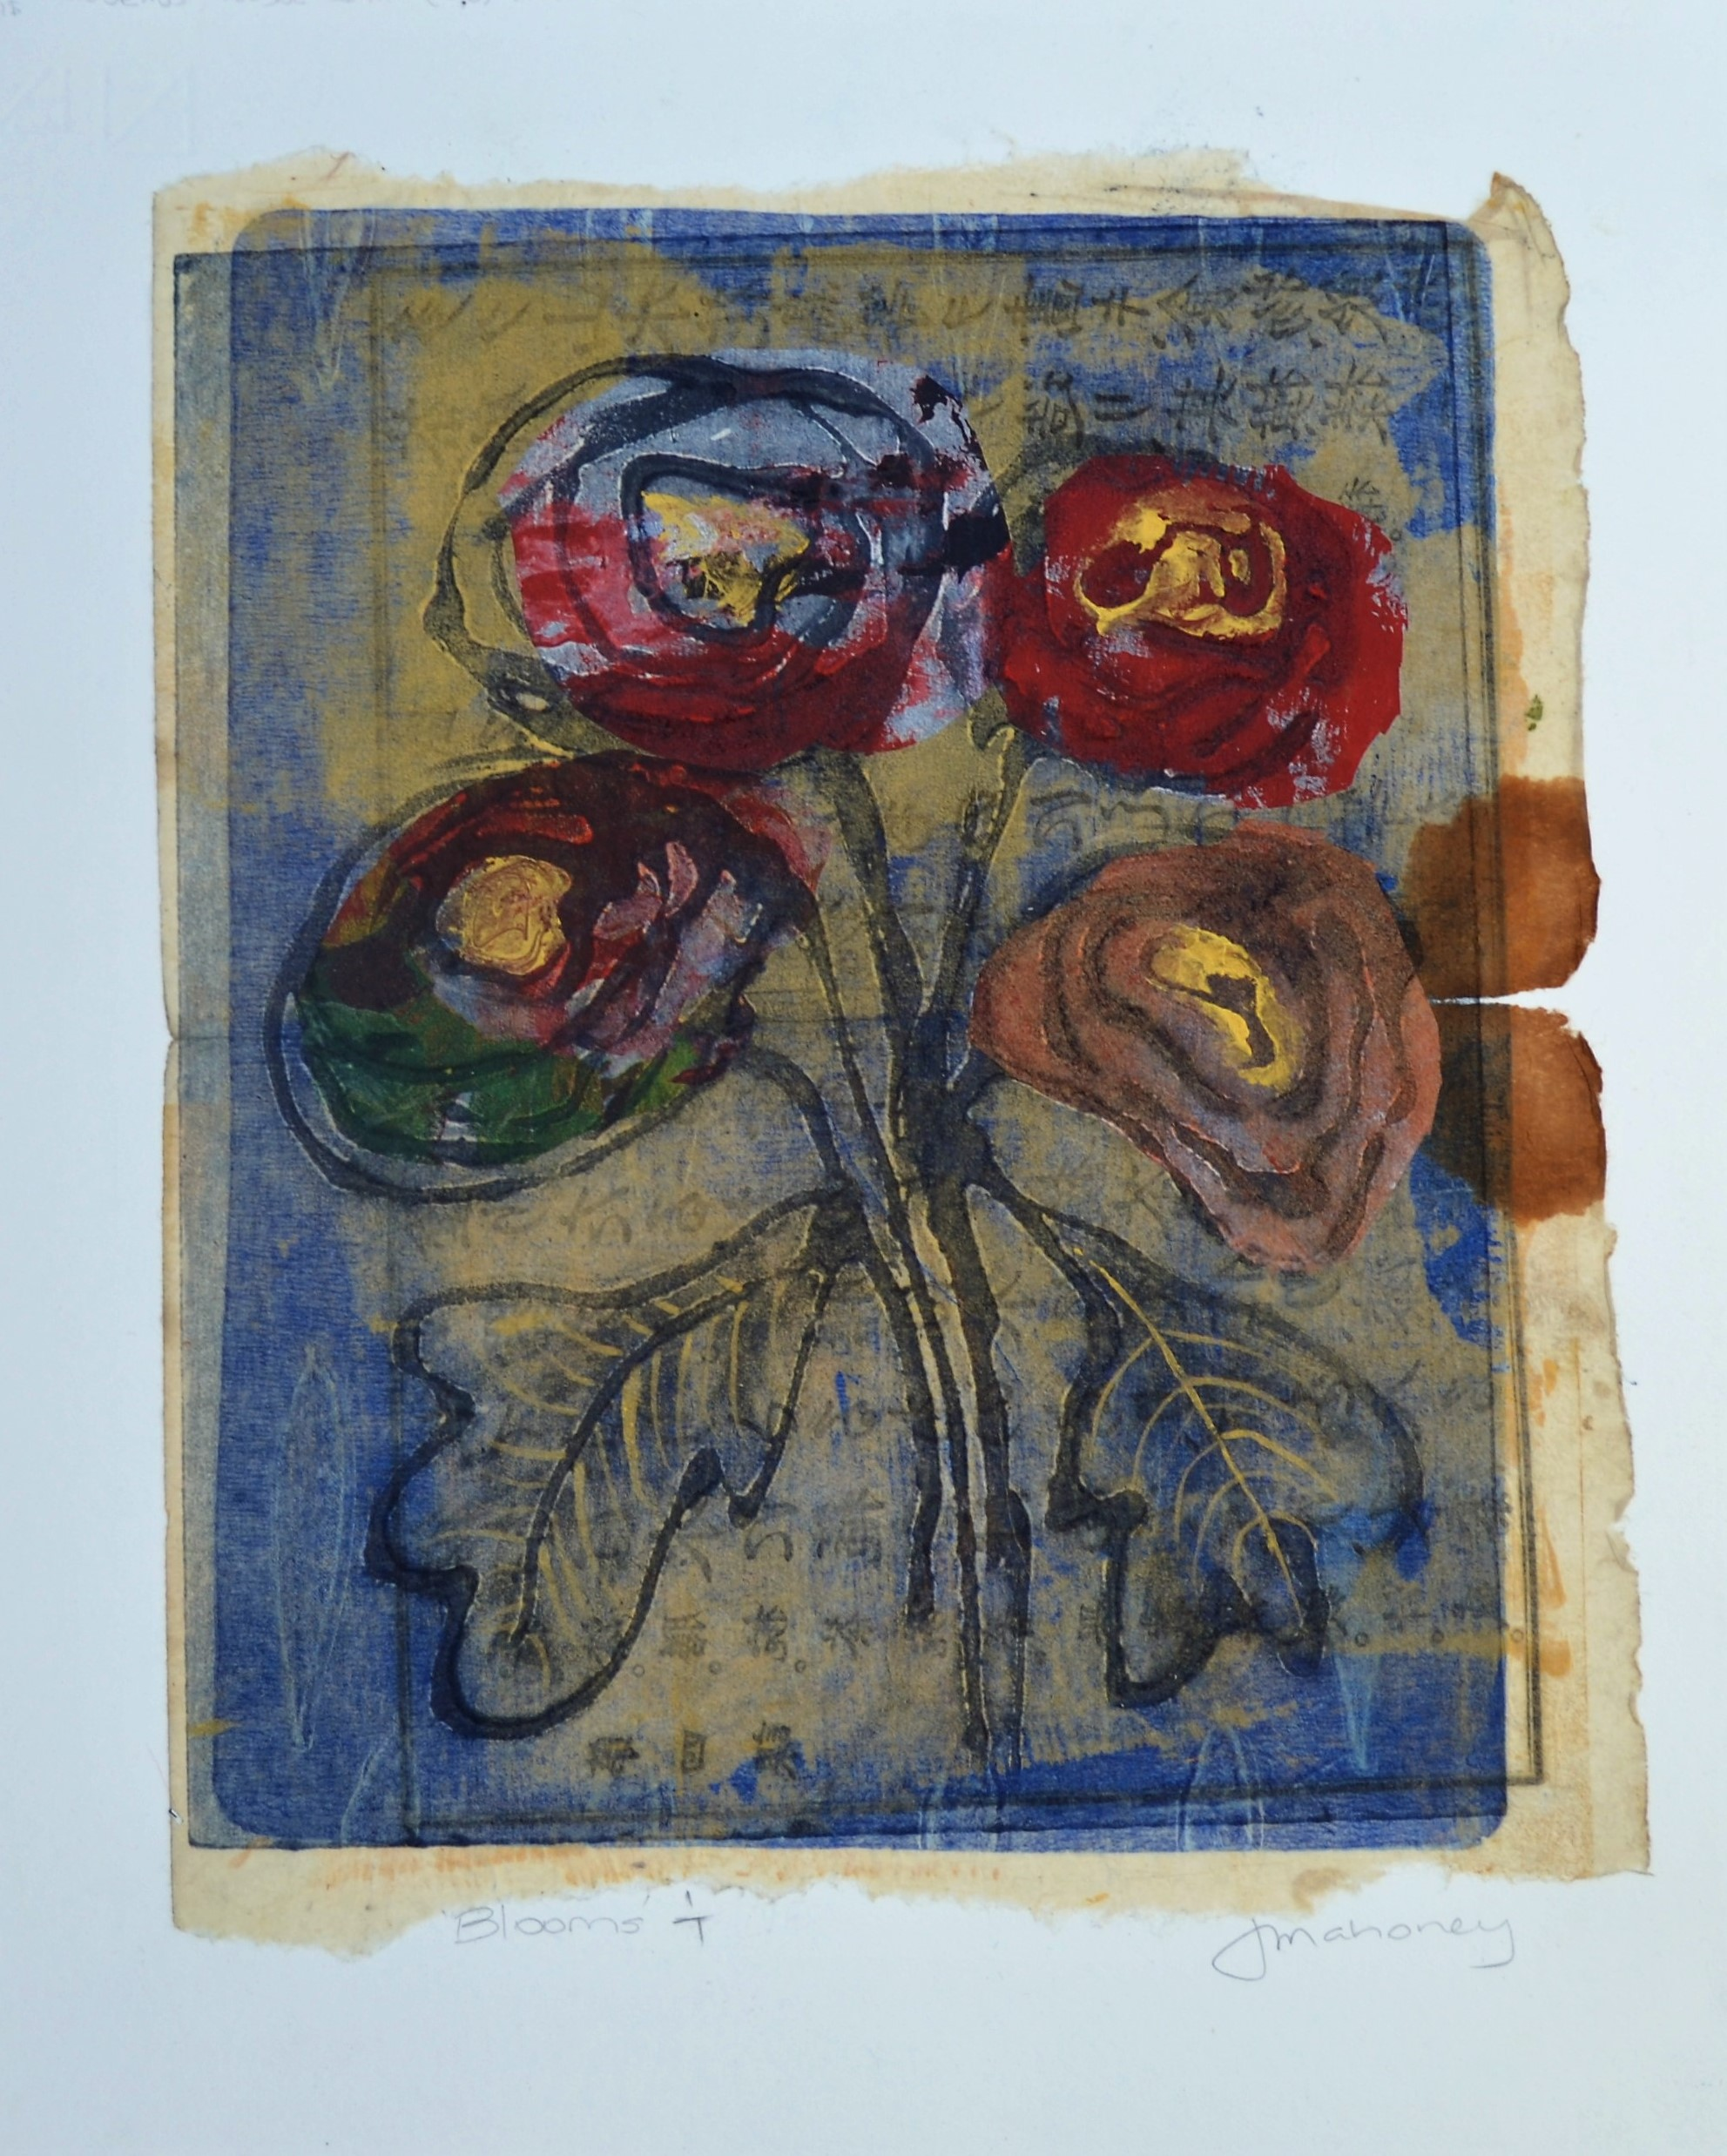 <strong>Blooms 1/7 VE<strong>